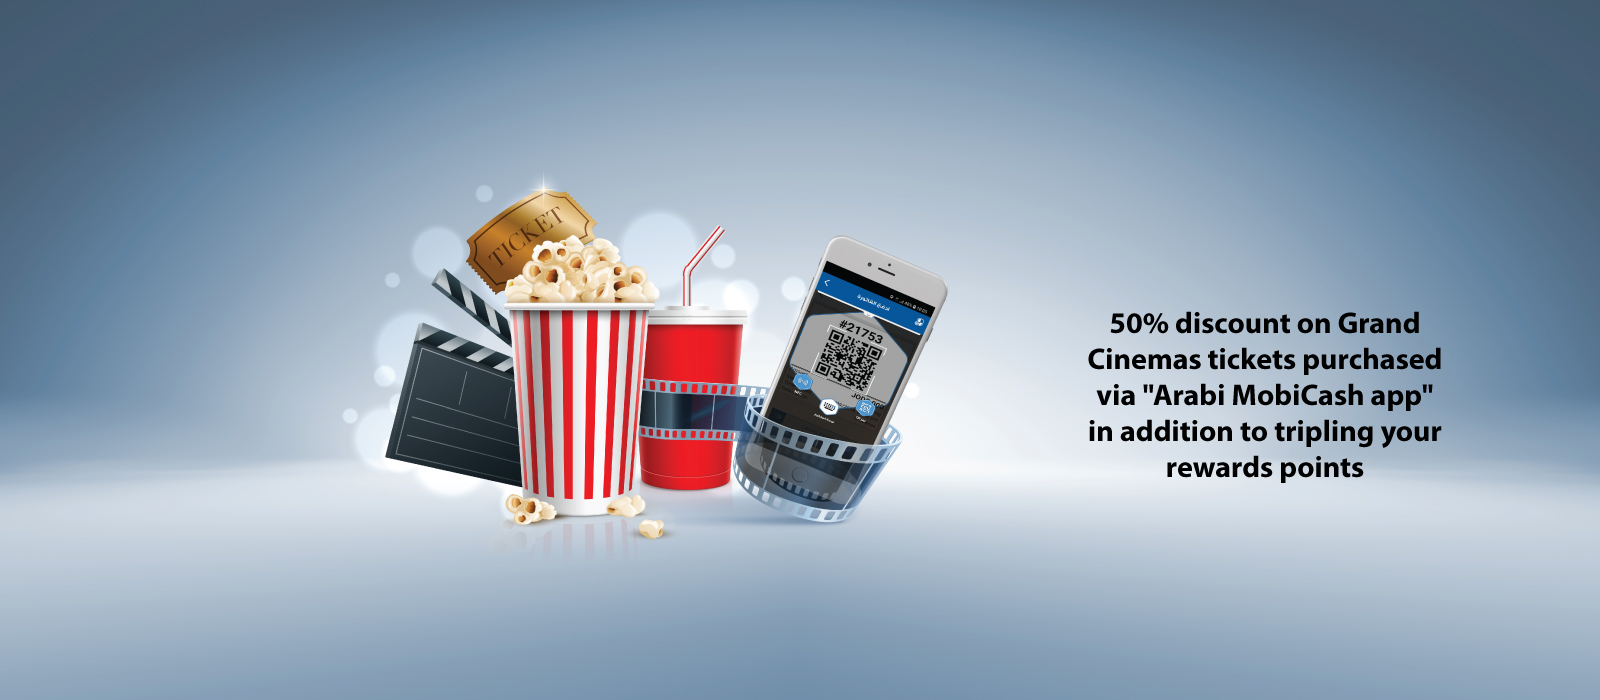 Cinema-New-Website-Banner-1600x700-ENG